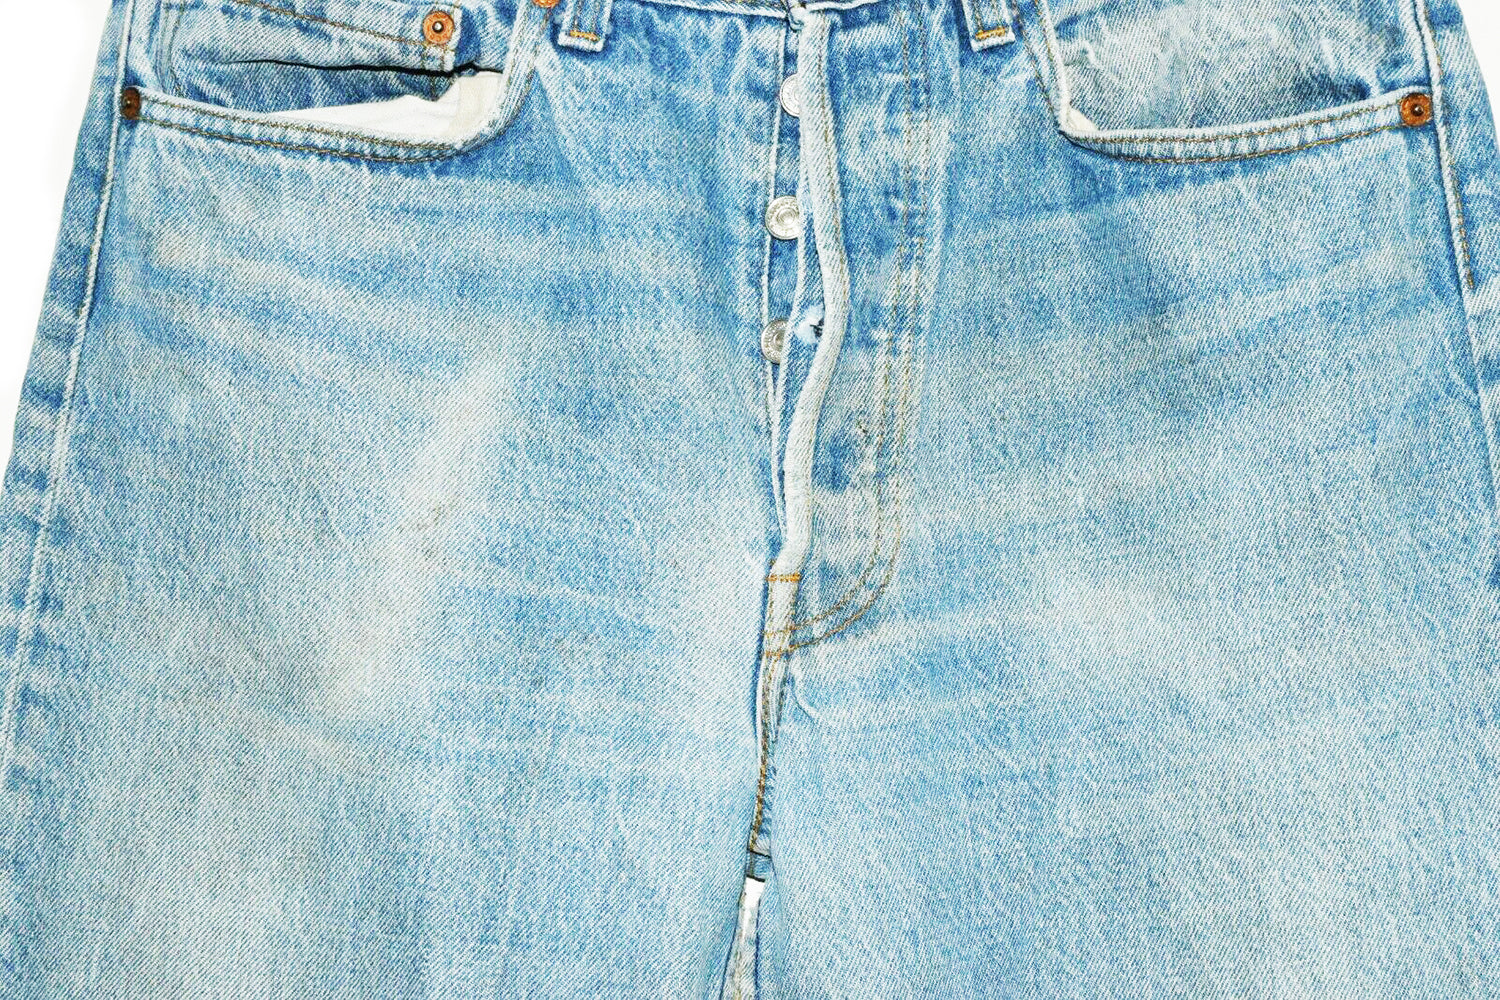 "Vintage Levi's button fly jeans in light wash denim  good condition, natural distressing on back pockets, some light stains from wear on both legs (pictured)  Waist 33""  Inseam 38"""